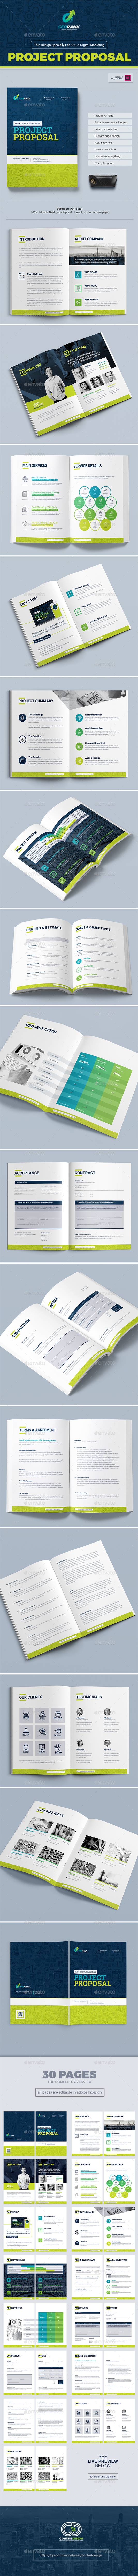 Project Proposal Template for SEO (Search Engine Optimization) & Digital Marketing Agency / Company - Proposals & Invoices Stationery